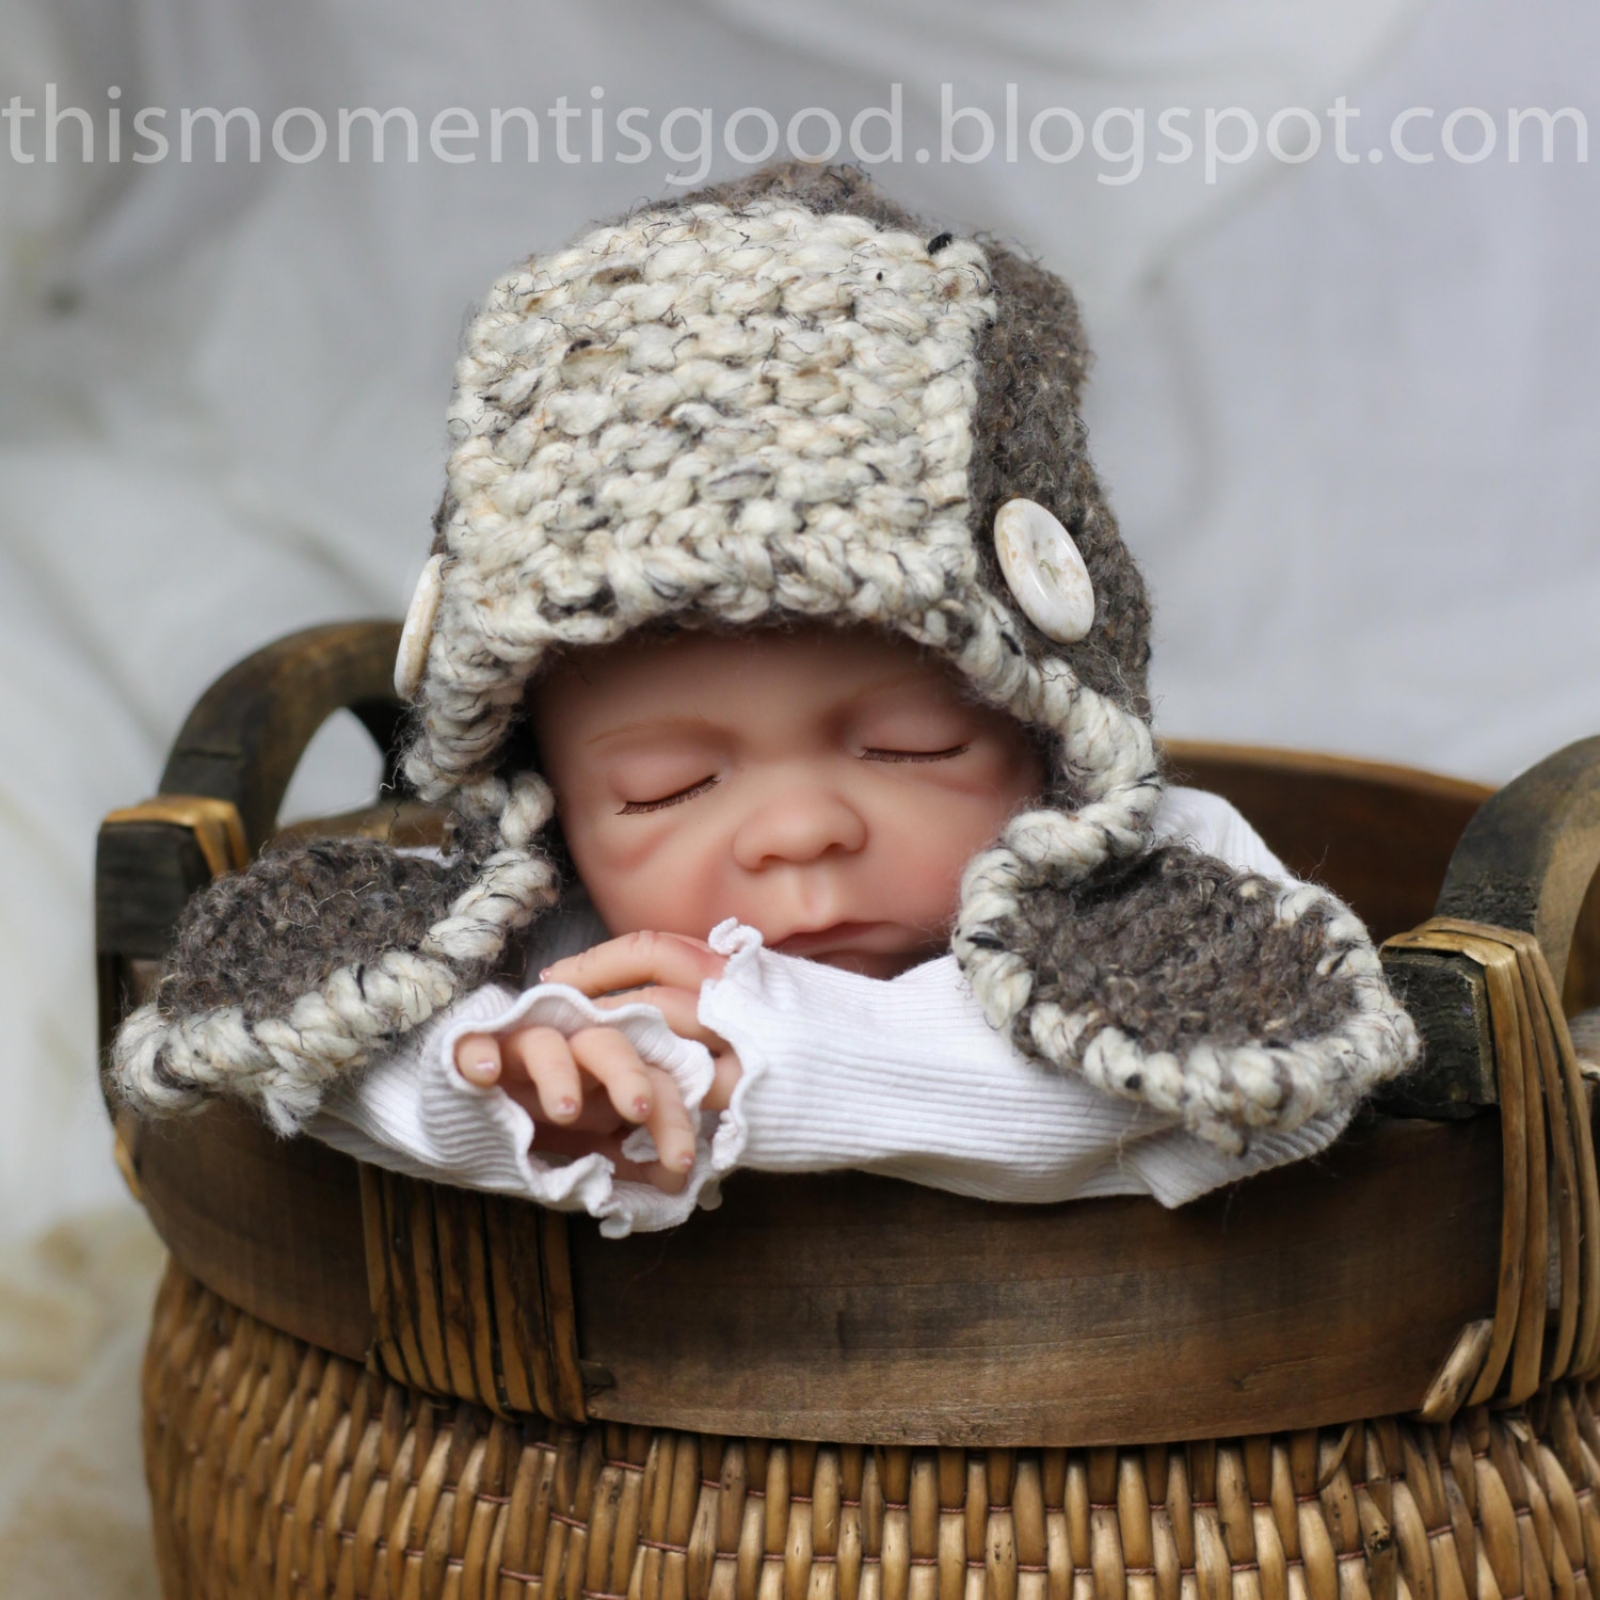 LOOM KNIT AVIATOR HAT FOR BABY PATTERN | This Moment is Good